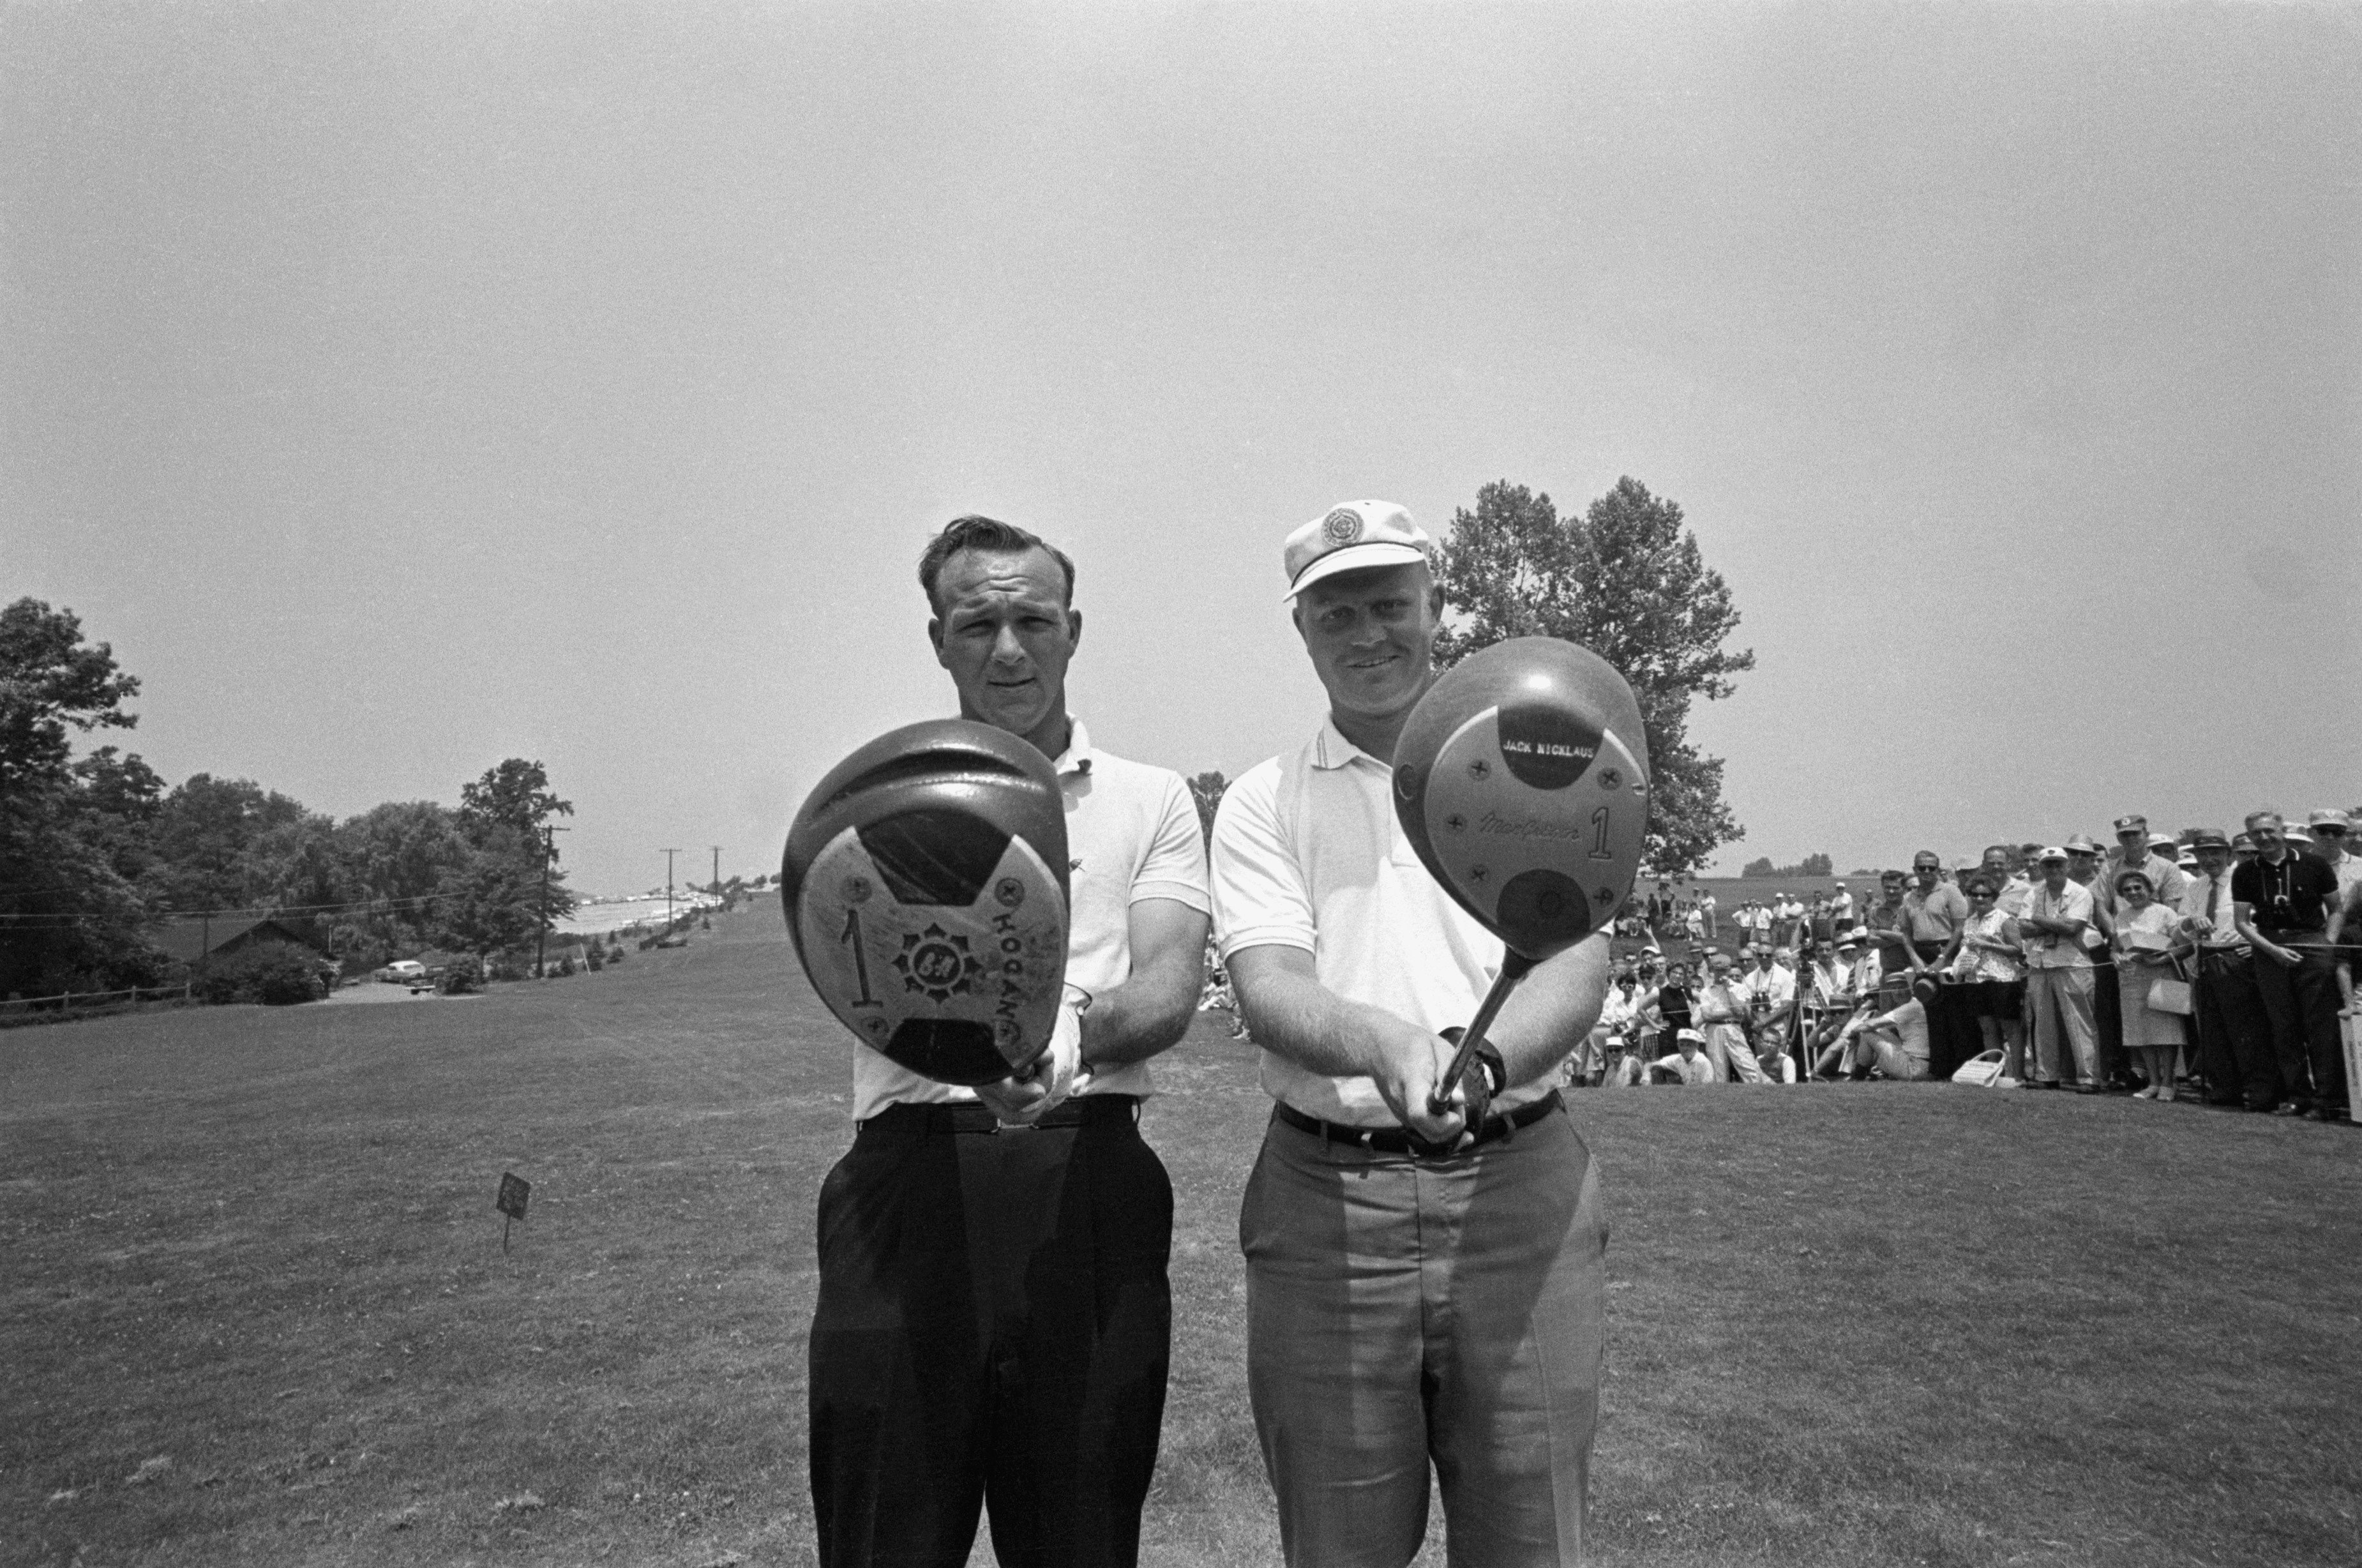 Arnold Palmer and Jack Nicklaus check their drivers defore teeing off for a tie-breaking playoff in the 1962 US Open